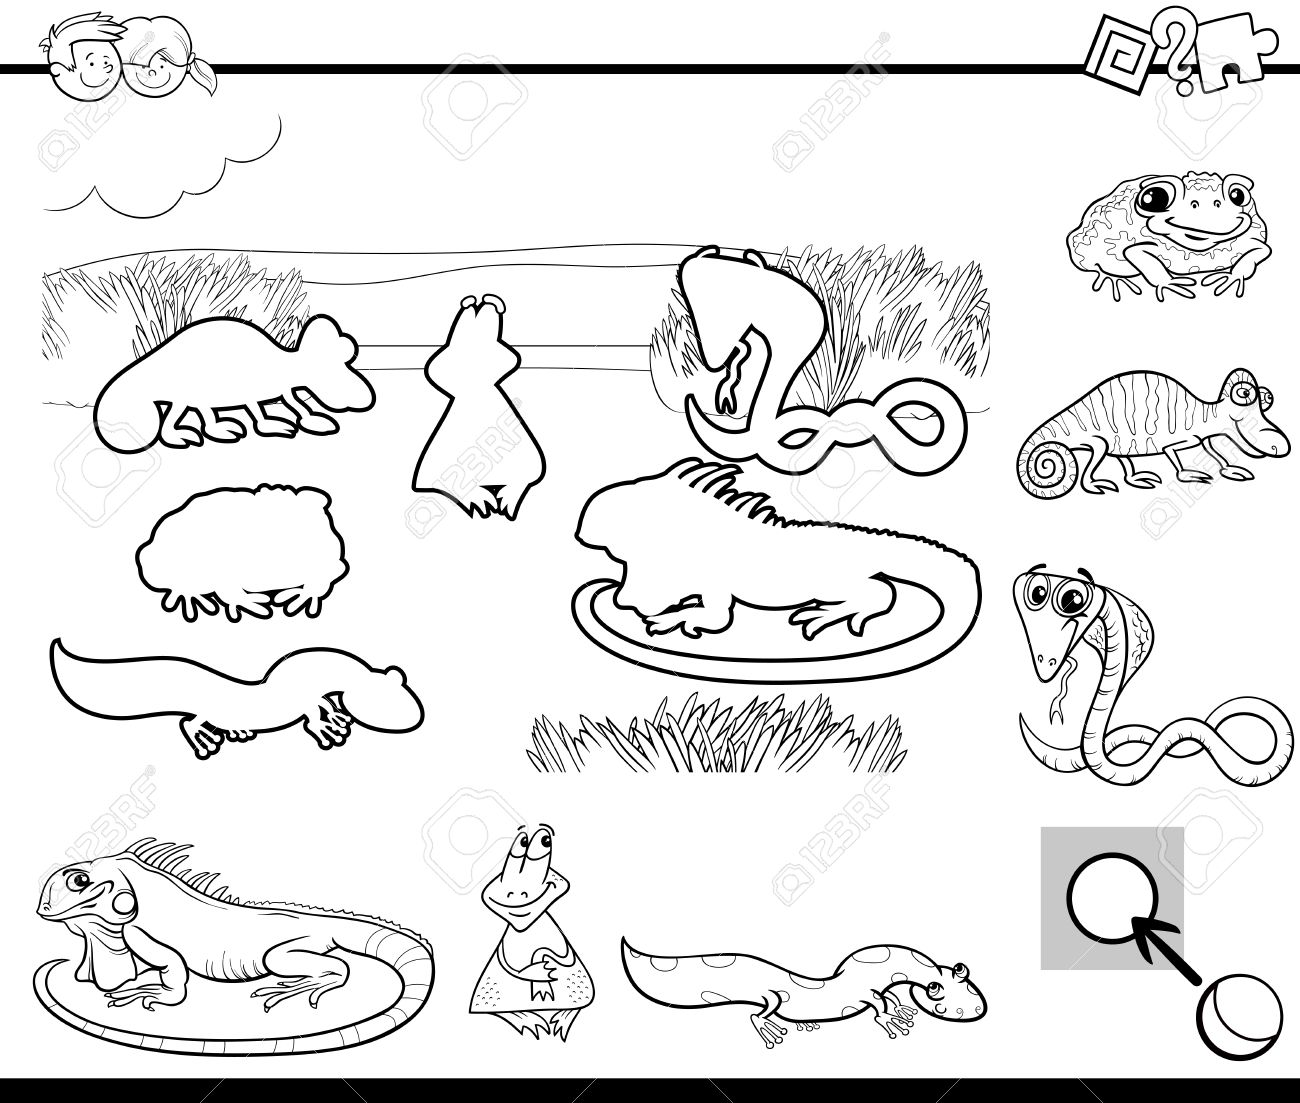 black and white cartoon illustration of educational activity